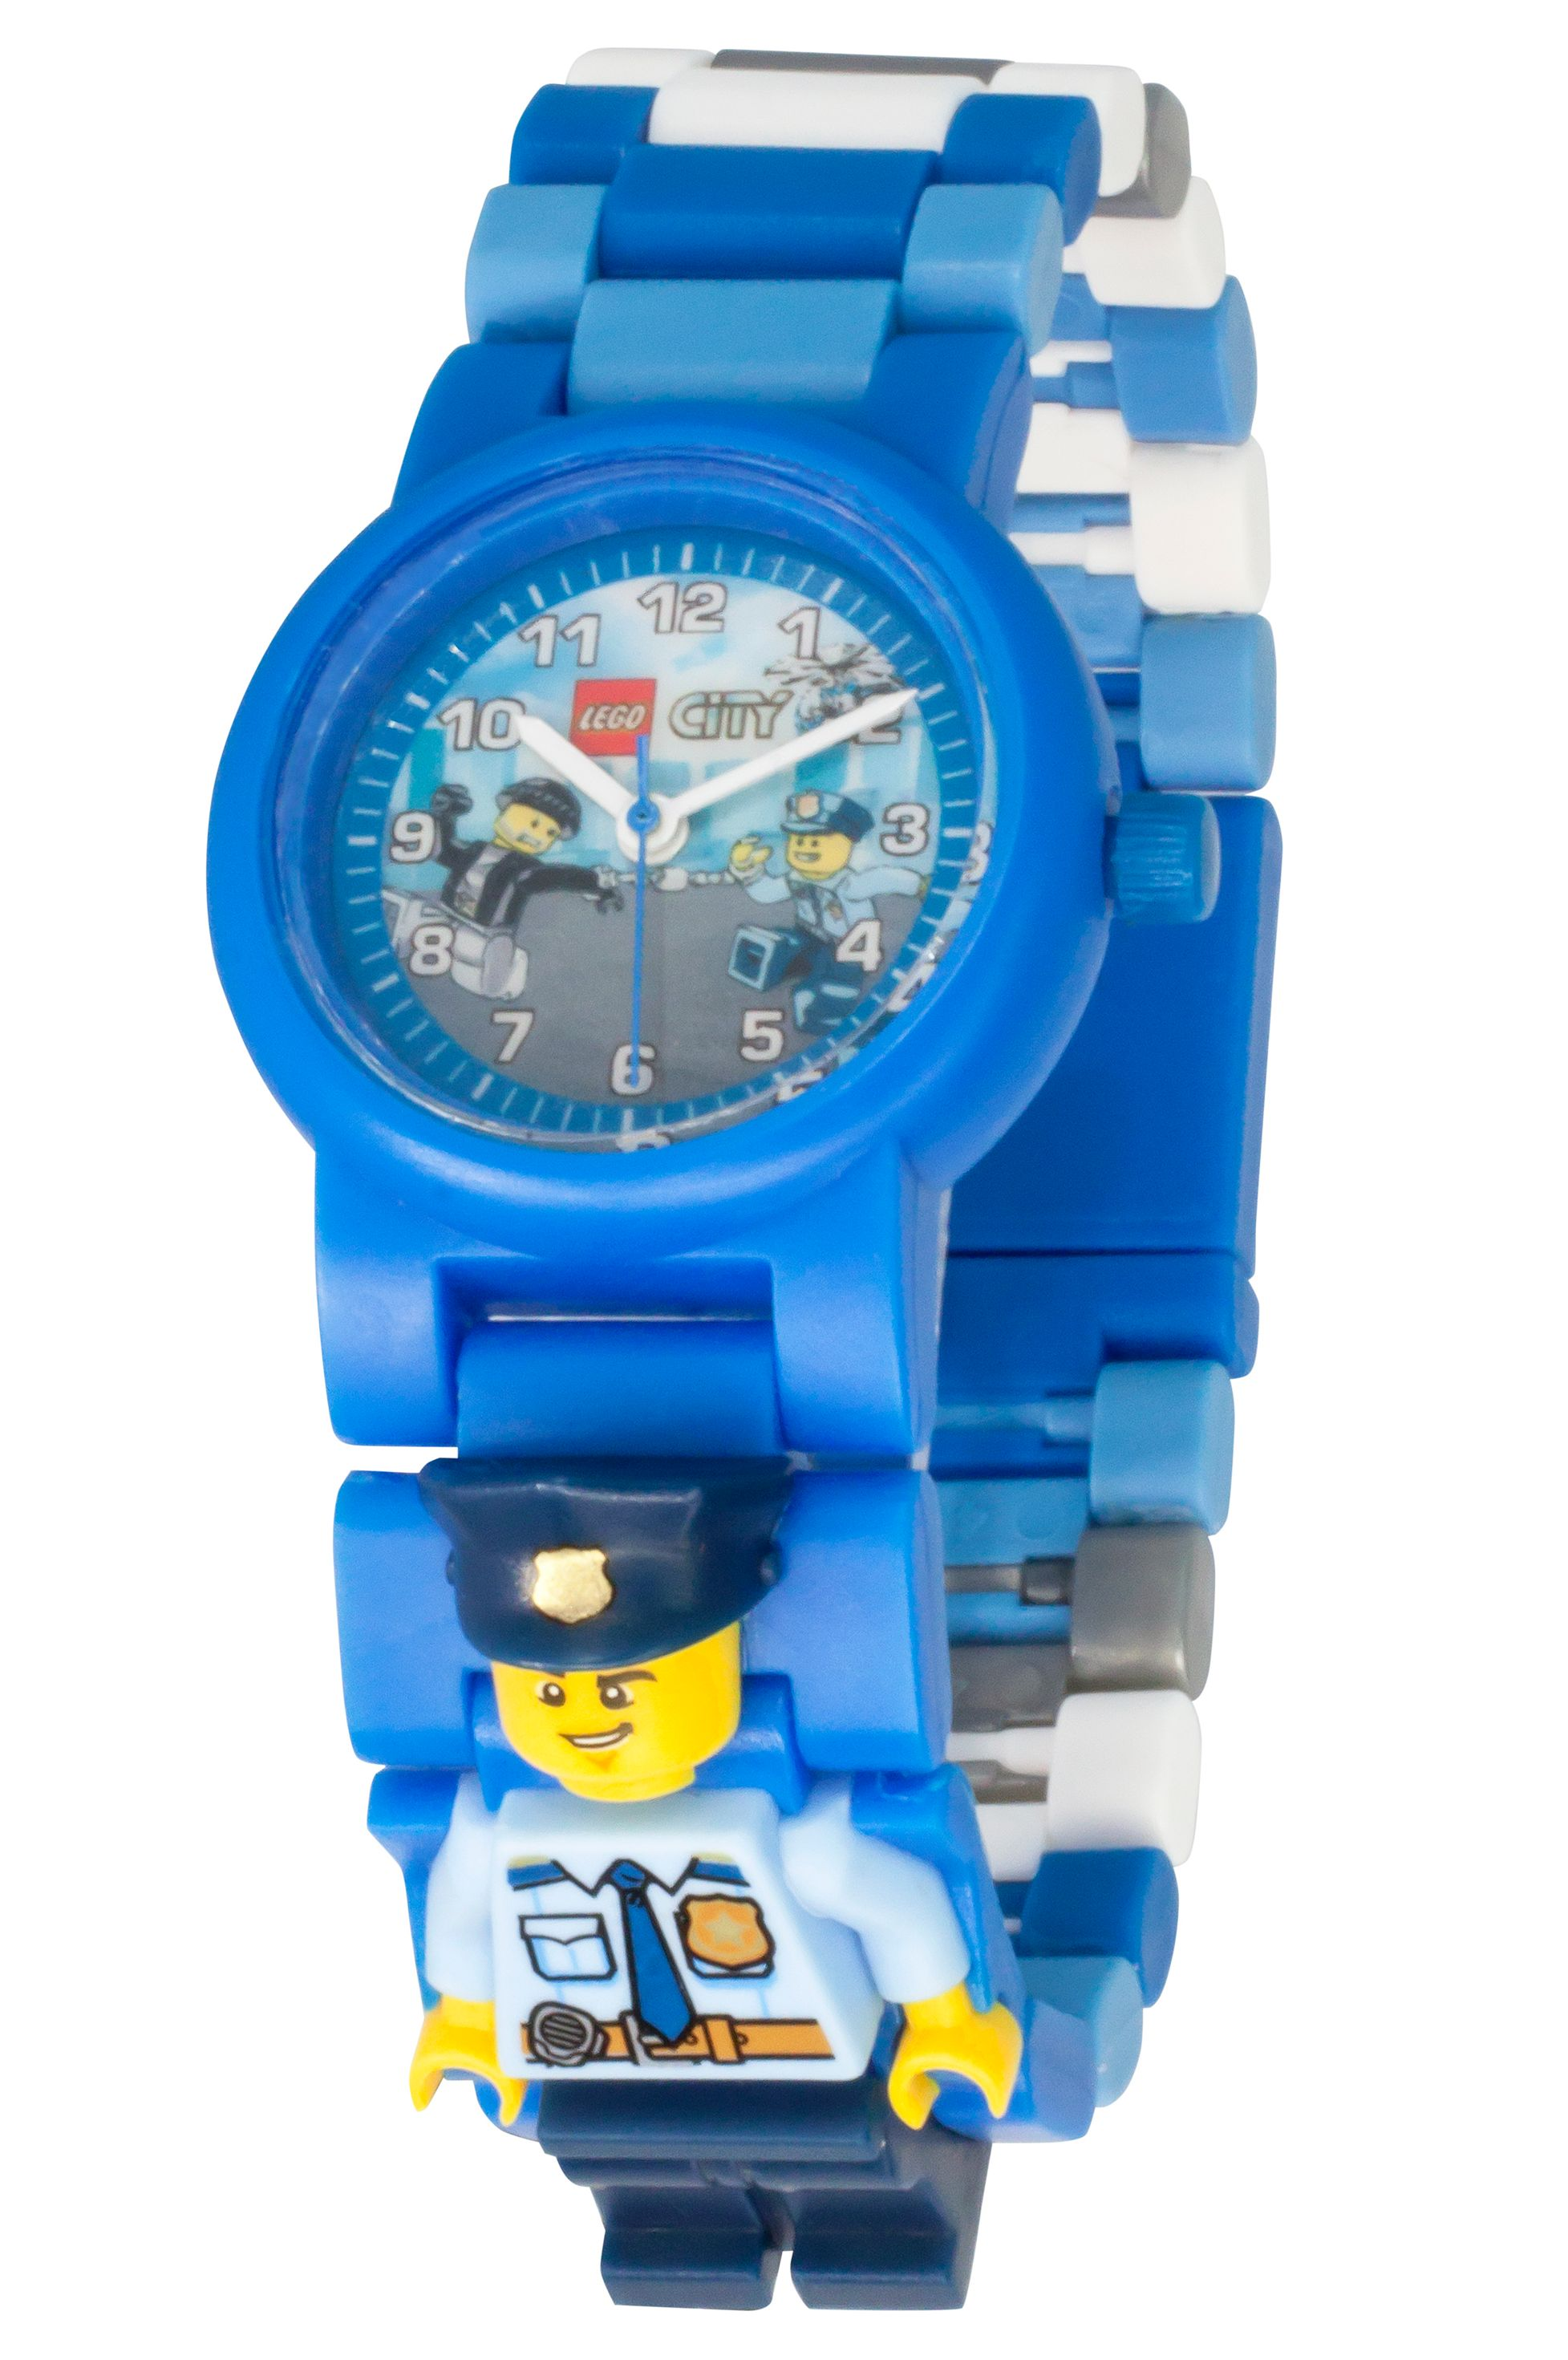 LEGO® City Police Officer Minifigure Link Watch 5005611 | City | Buy online at the Official LEGO ...